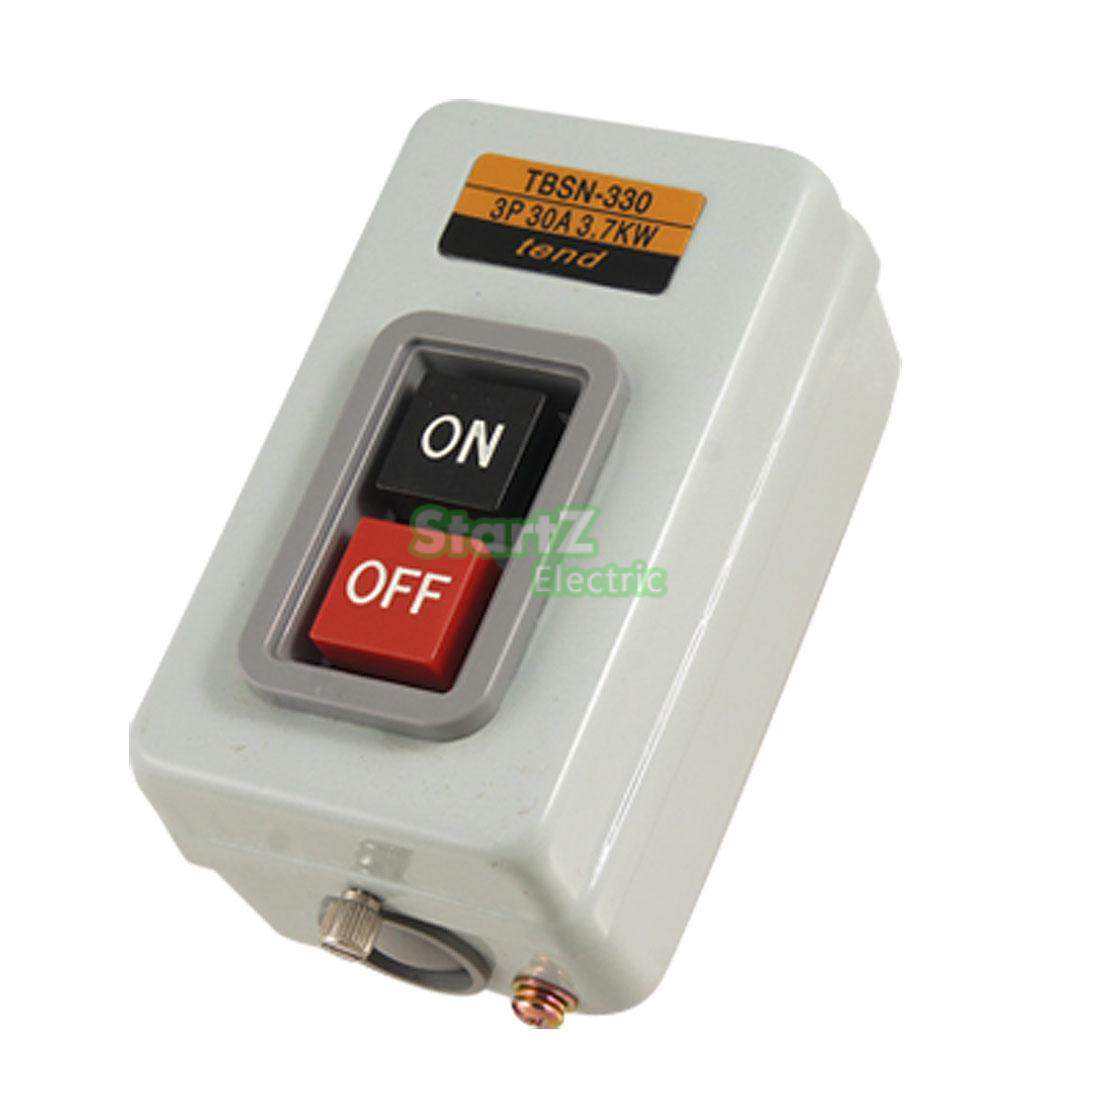 Rectangle Metal Box ON OFF Position Push Button Switch AC 380V 3.7Kw TBSN-330 rectangle metal box on off position push button switch ac 380v 3 7kw tbsn 330